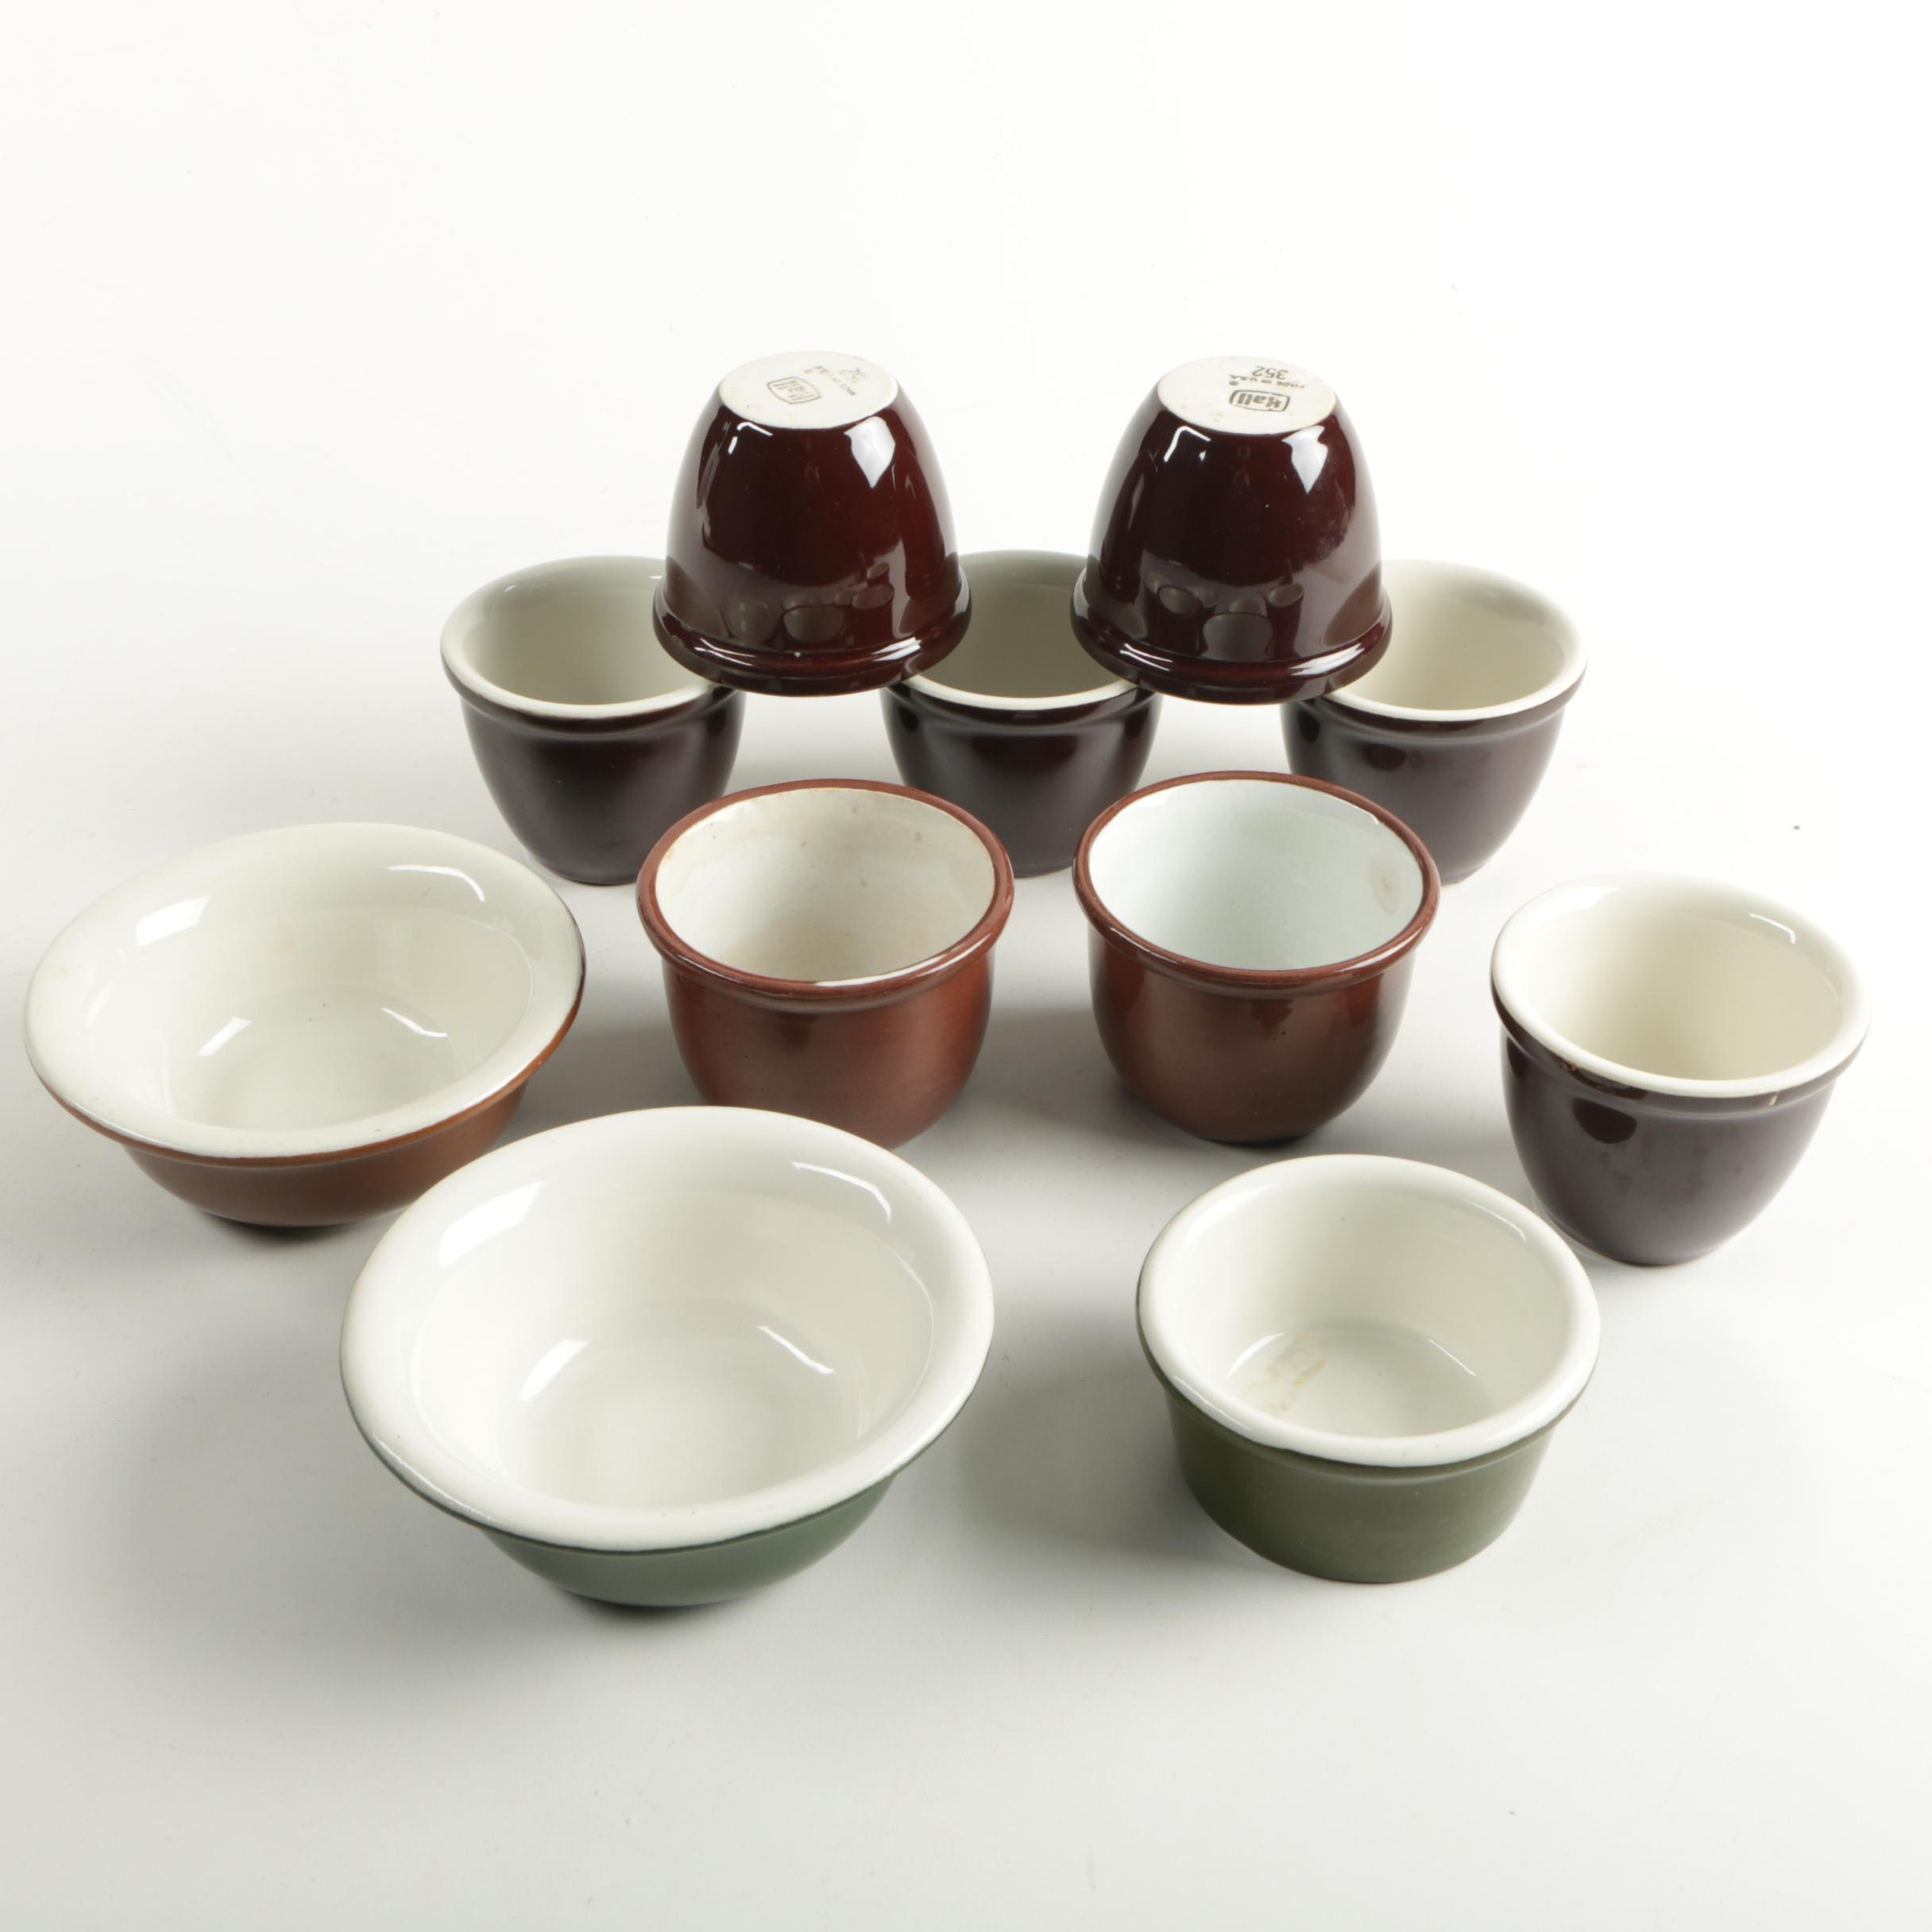 Vintage Hall and Weller Pottery Bowls